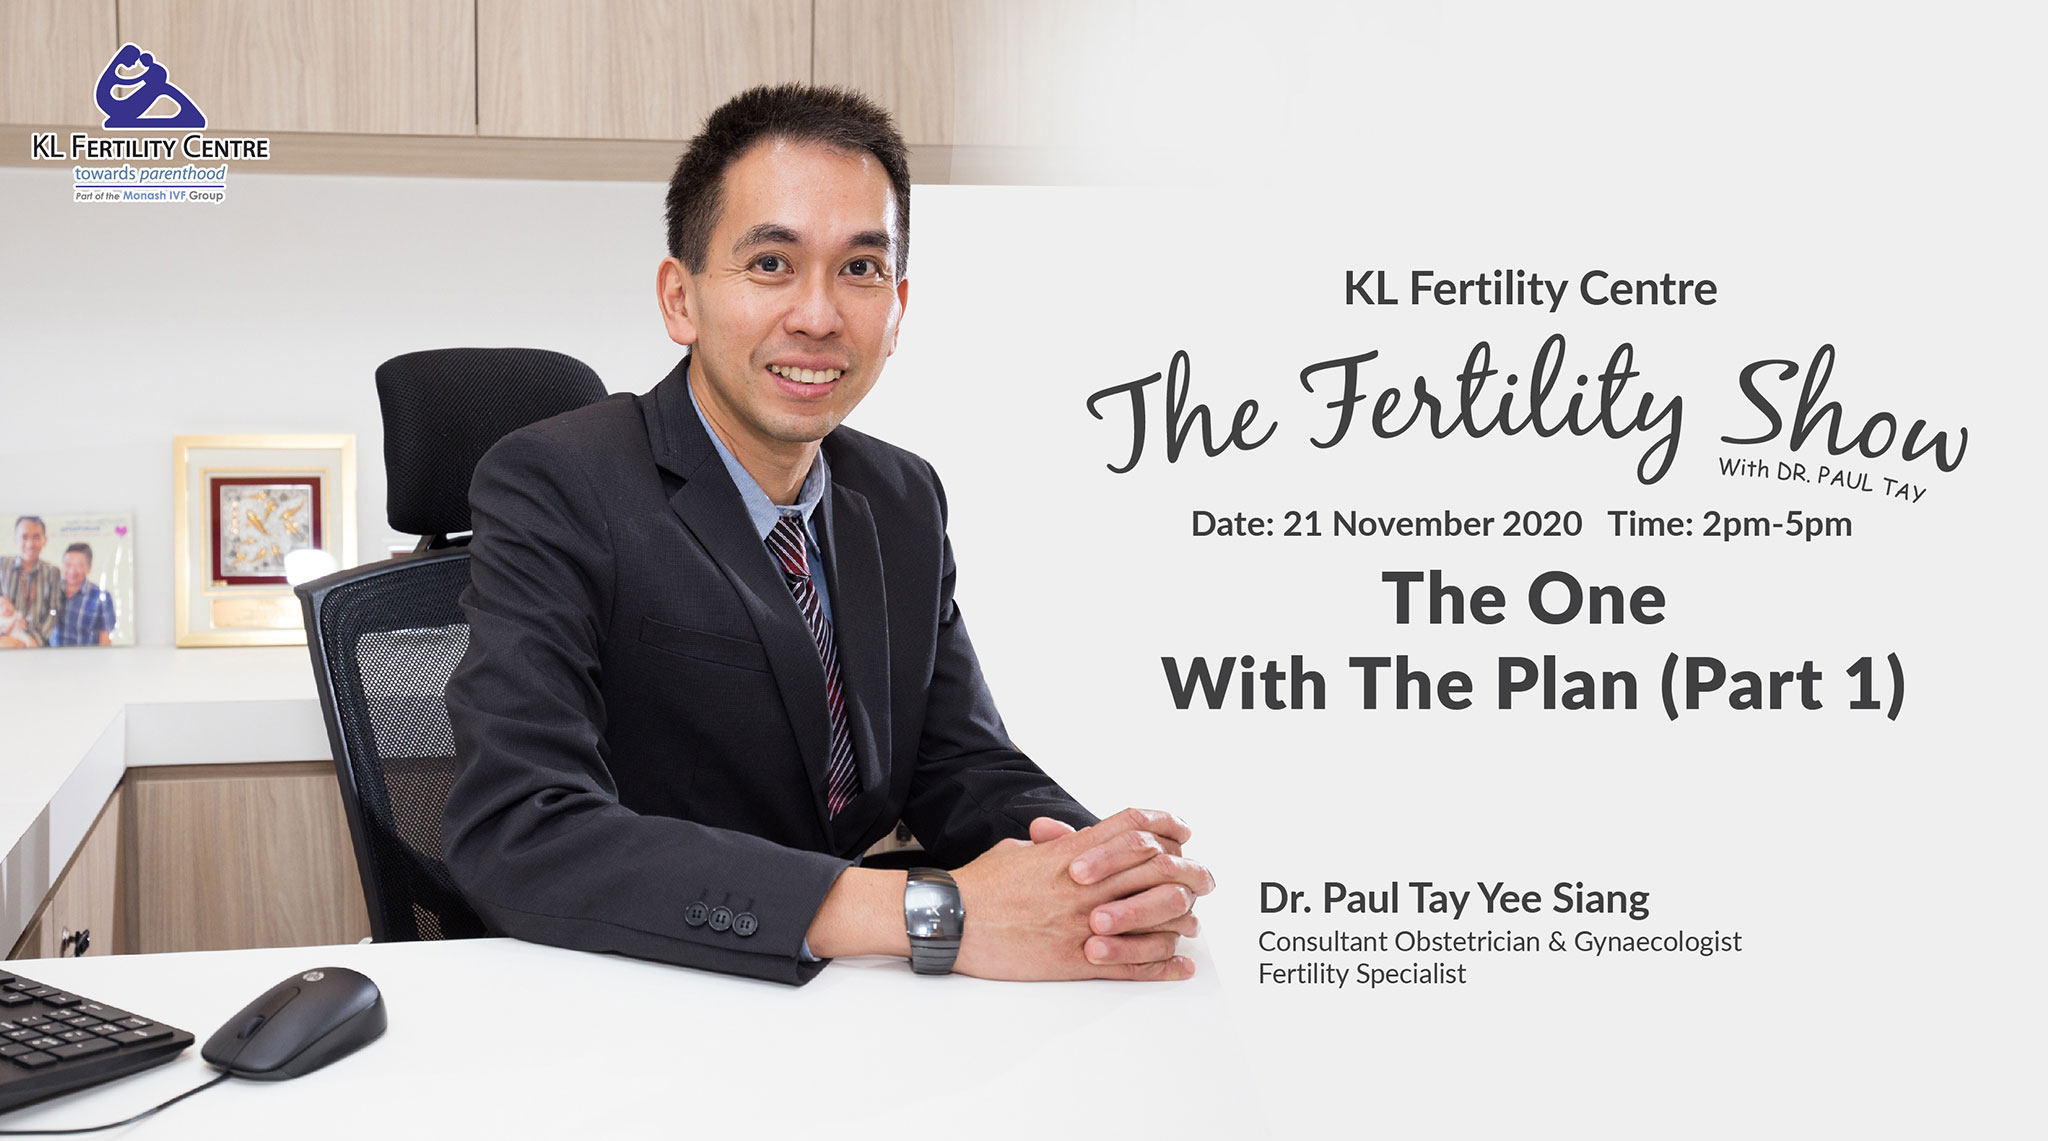 The Fertility Show : The One with the Plan, 21 November 2020 - Dr. Paul Tay